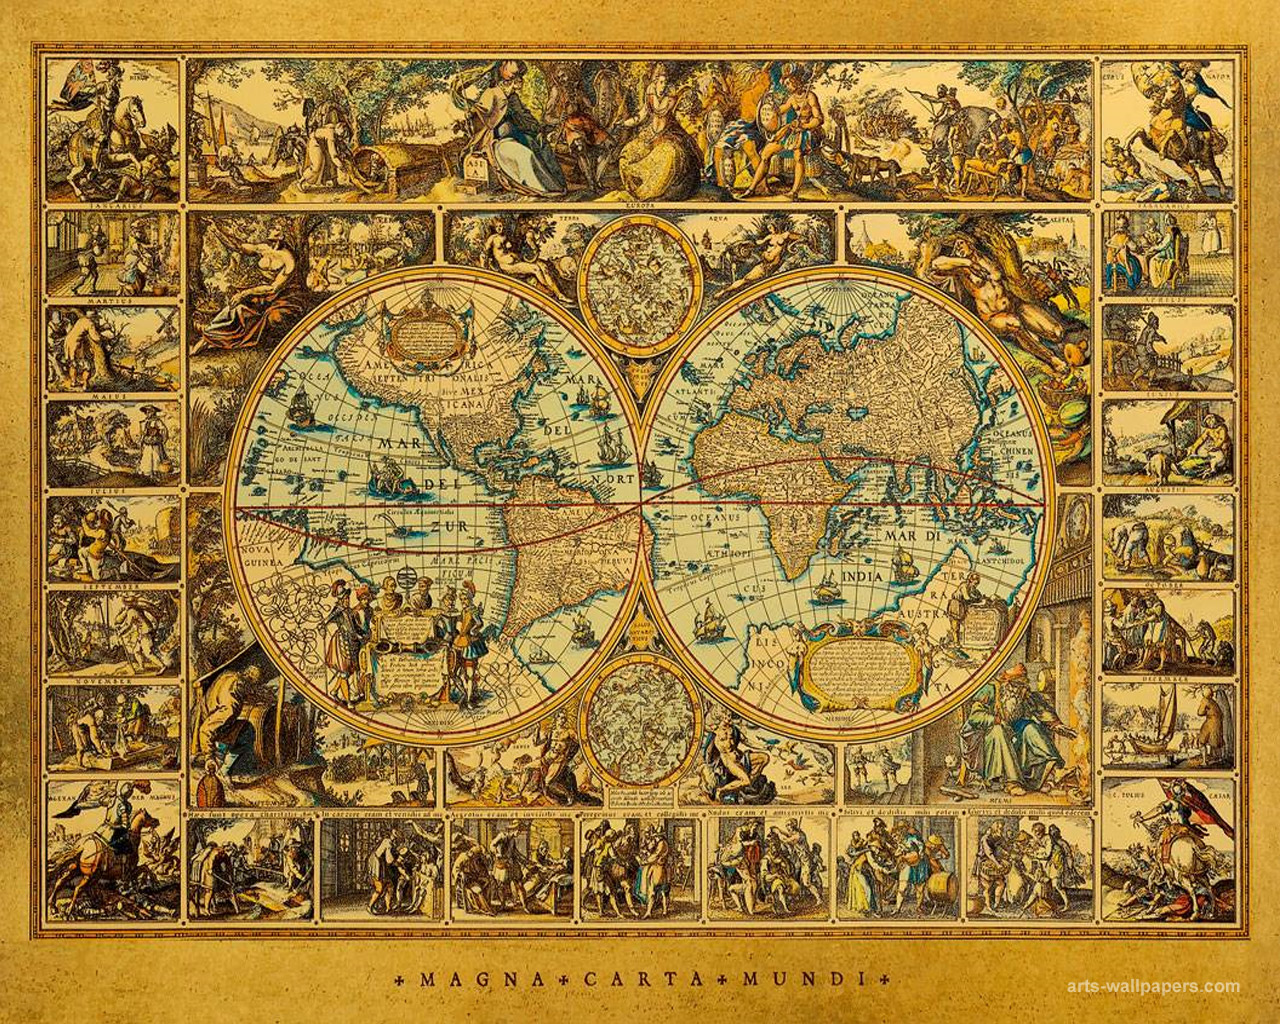 Antique world map wallpaper sf wallpaper 17 images about antique maps on pinterest wallpaper art the gumiabroncs Choice Image